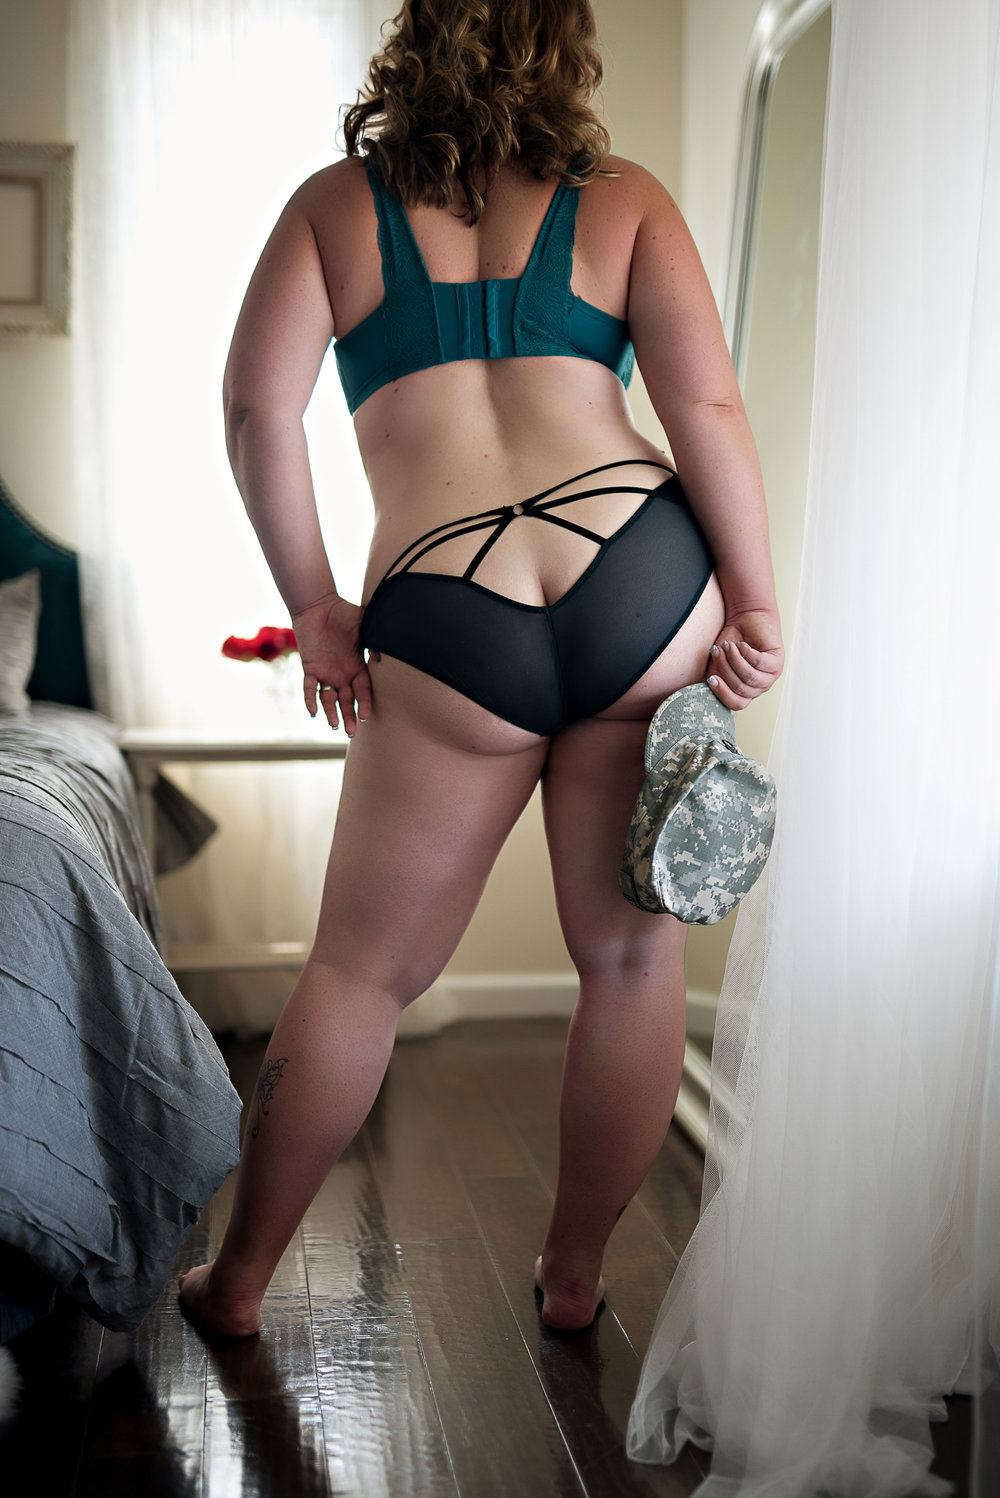 Denver boudoir photographer photo of military wife in sexy black and teal lingerie